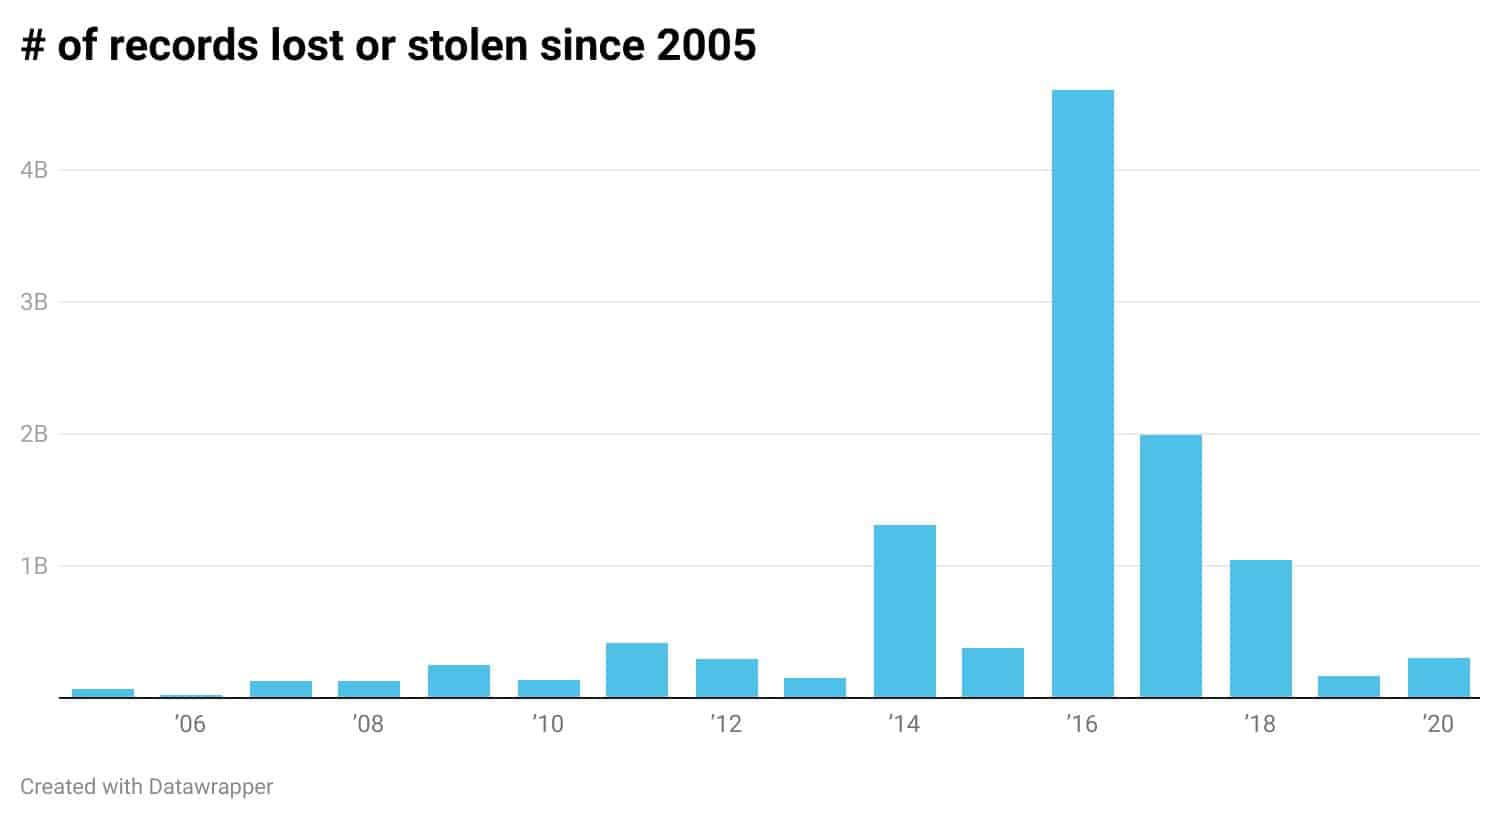 Number of records impacted by data breaches from 2005